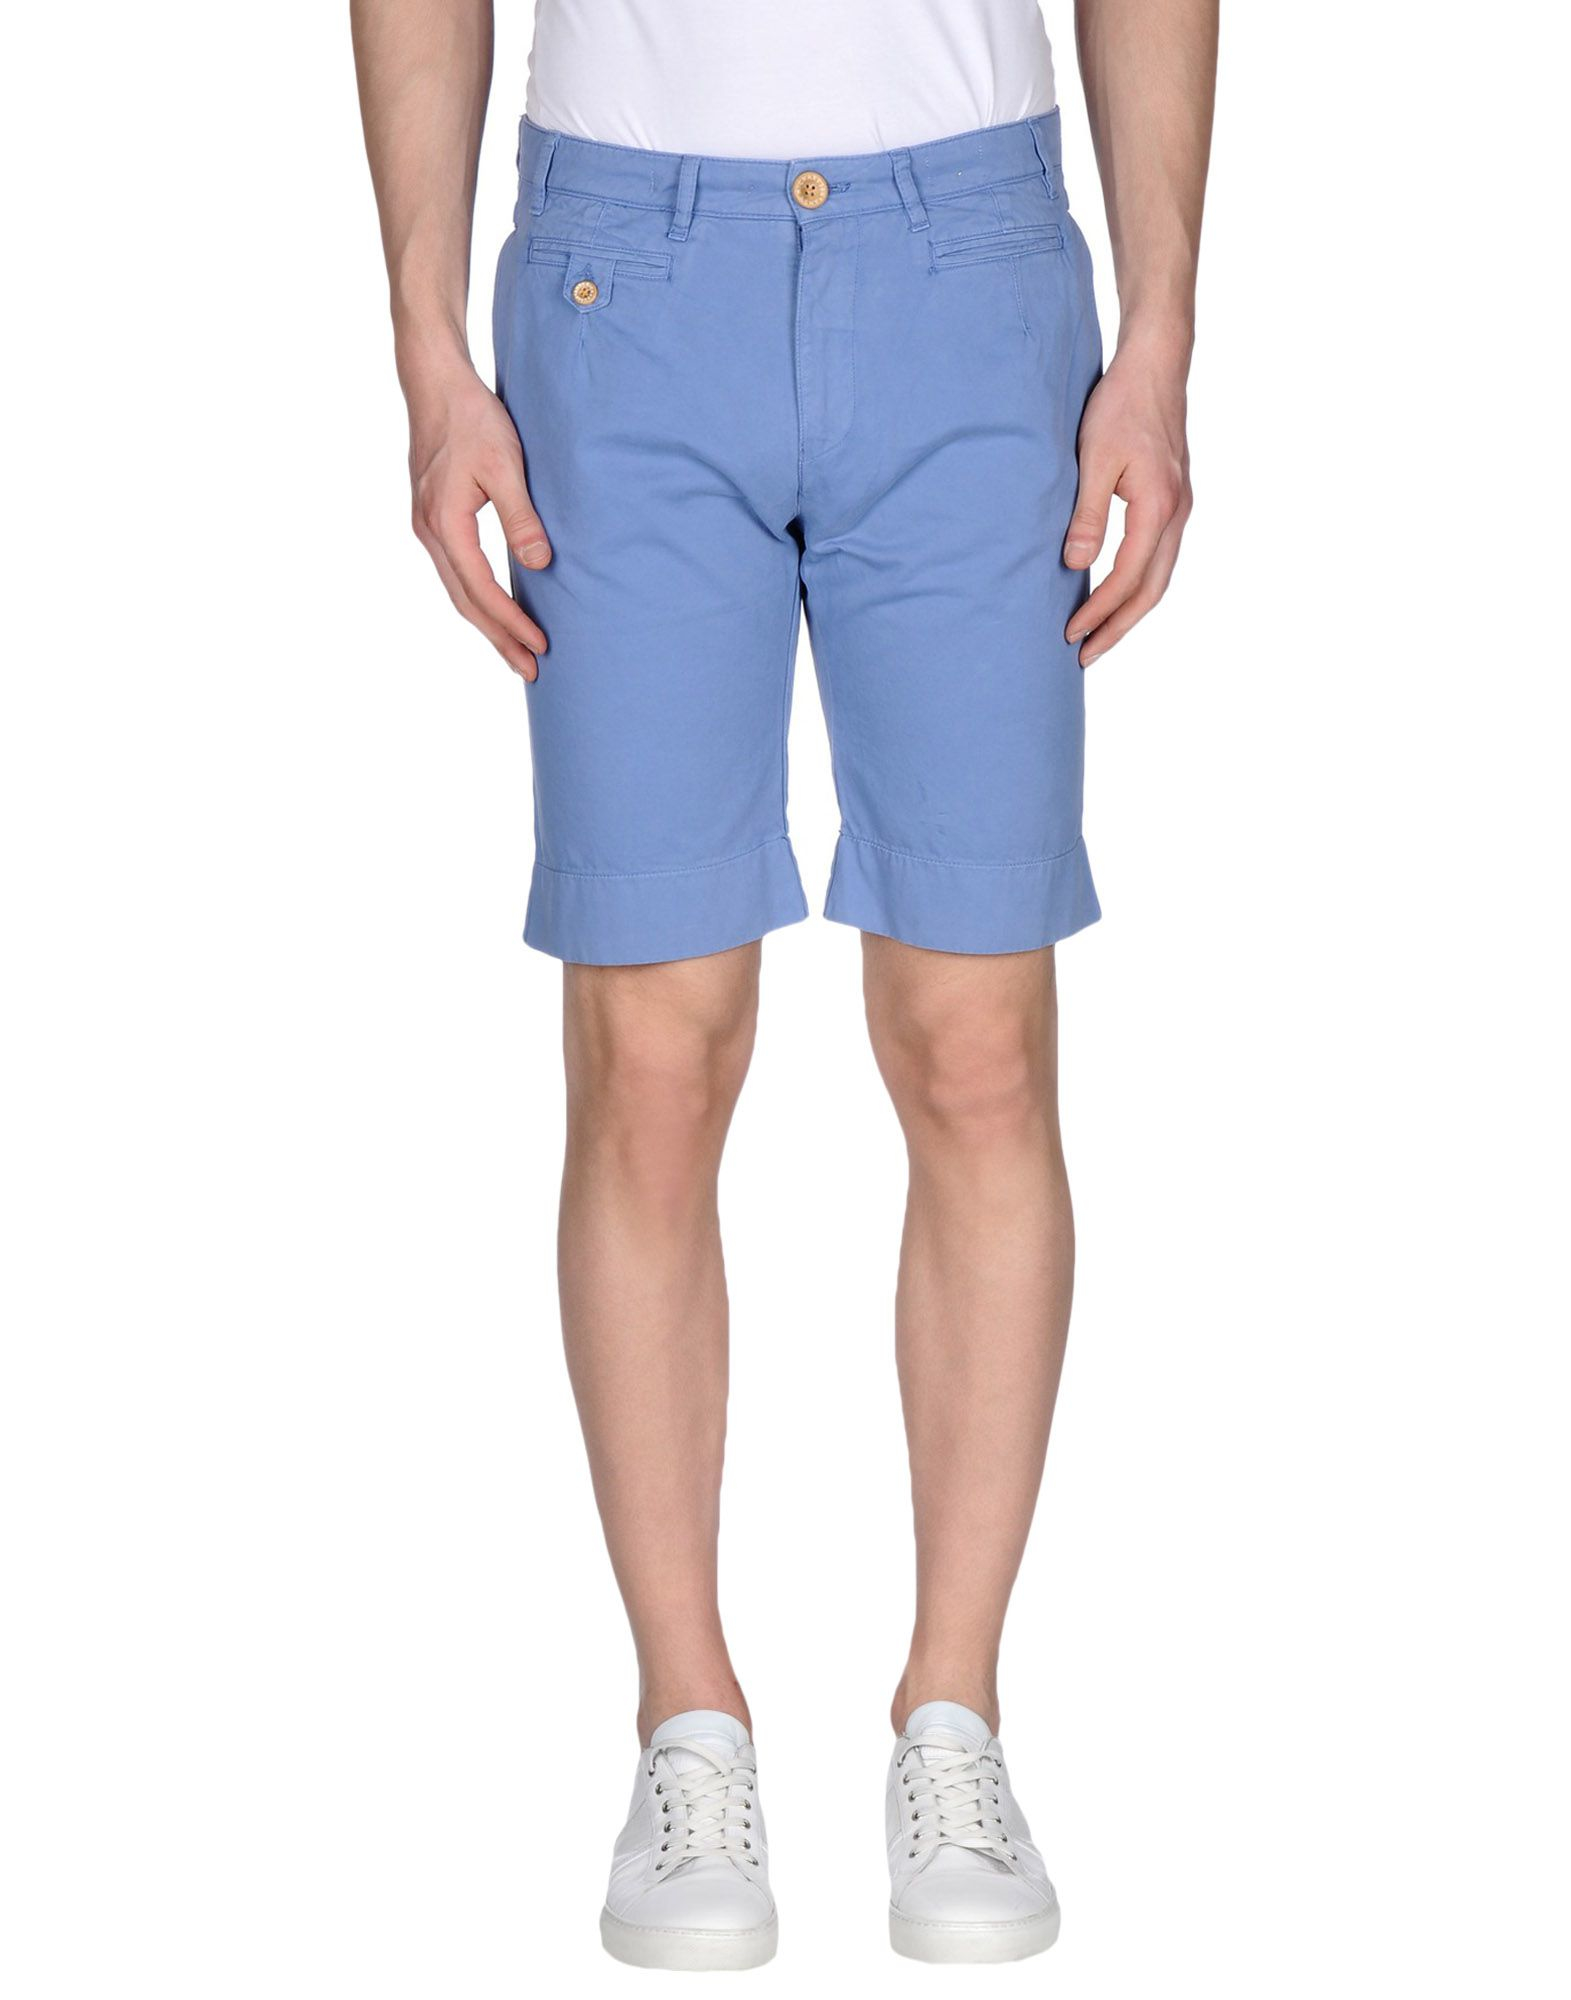 Buy Cheap 2018 Buy Cheap Latest TROUSERS - Bermuda shorts Andy Richardson Discount Best NvCDdq72hL